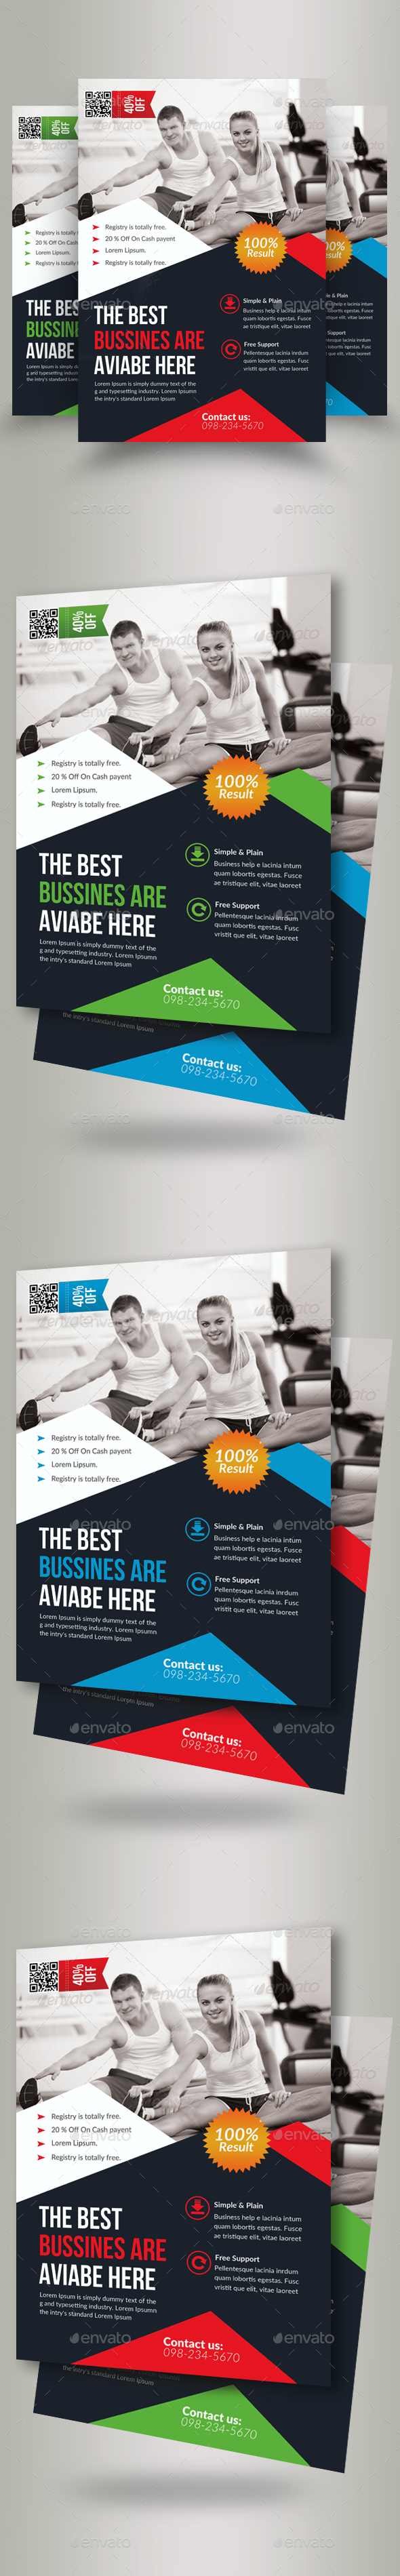 Body Fitness Gym Flyers - Flyers Print Templates